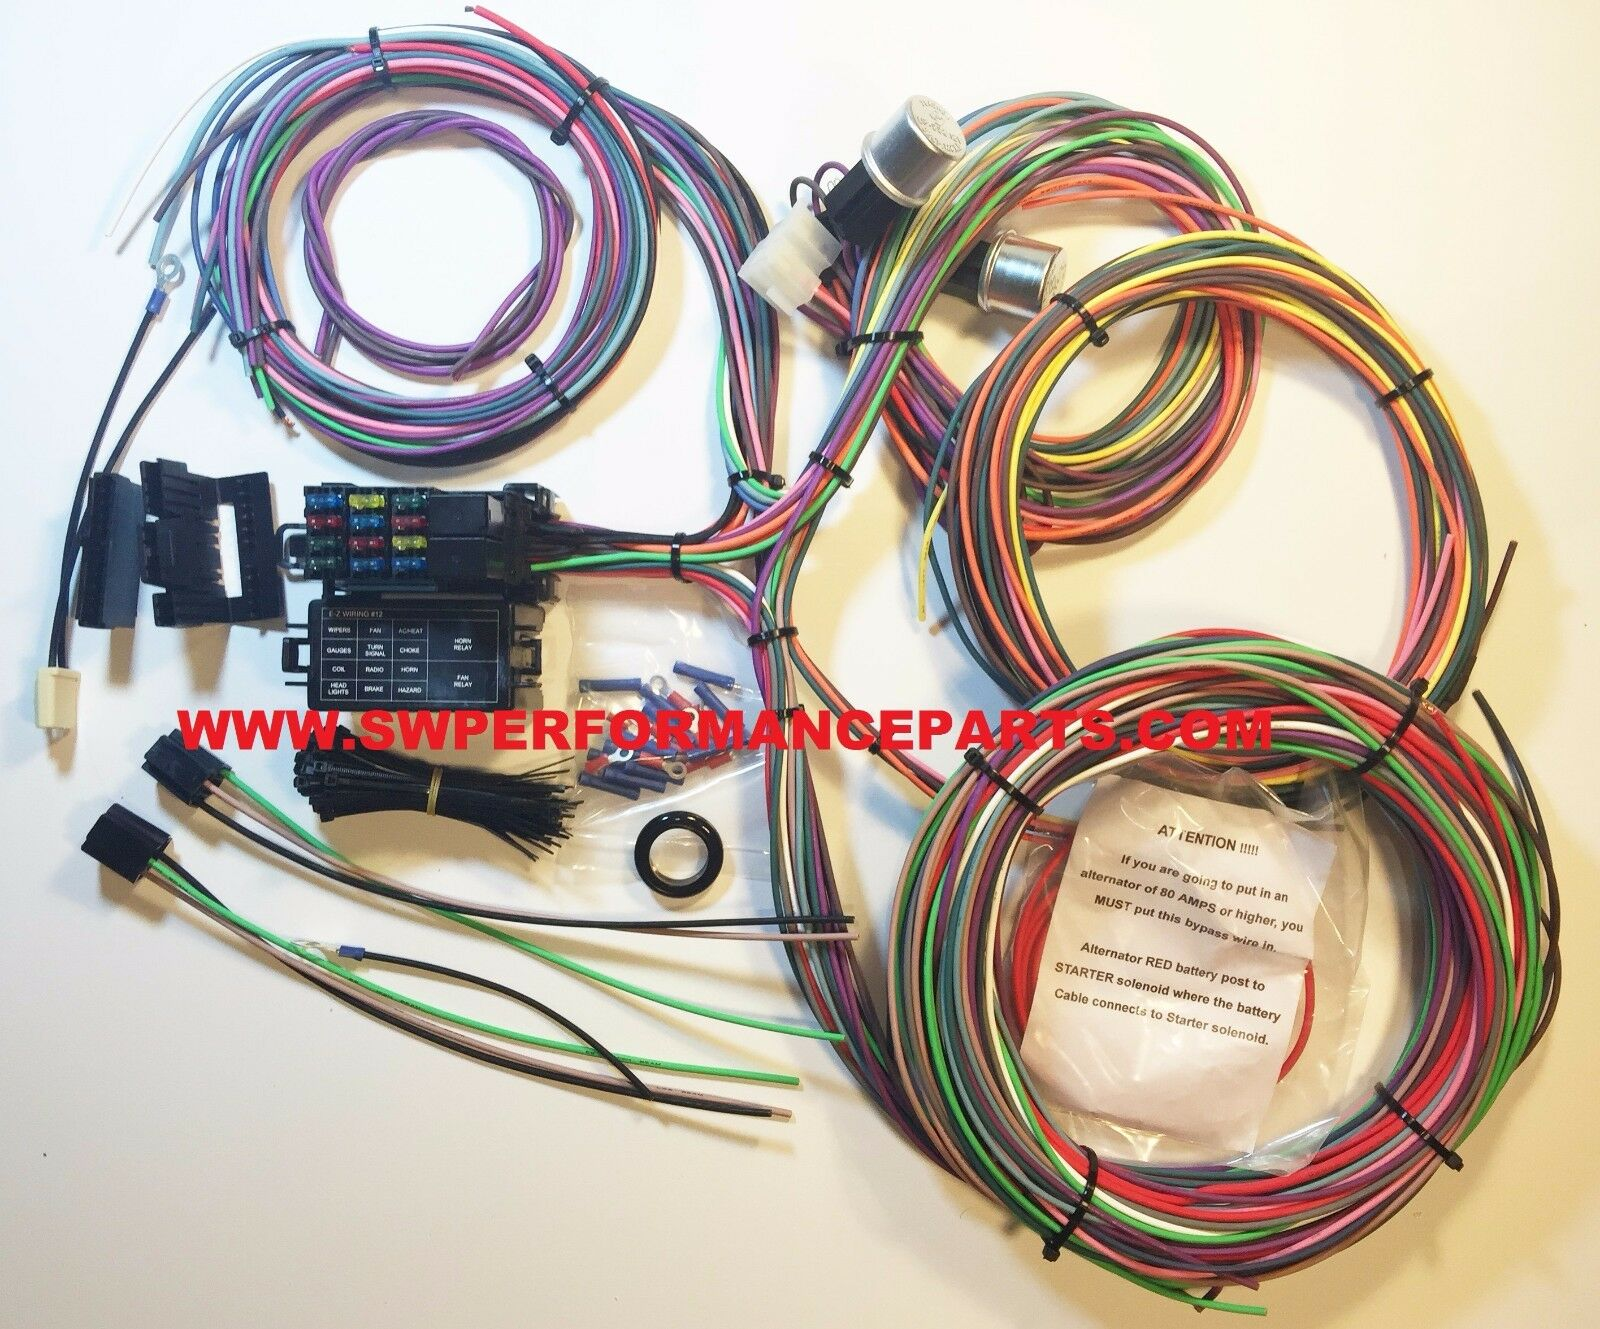 EZ Wiring 12 Circut Mini FUSE Wiring Harness CHEVY MOPAR FORD Hotrod XL WIRE  1 of 4FREE Shipping EZ Wiring ...